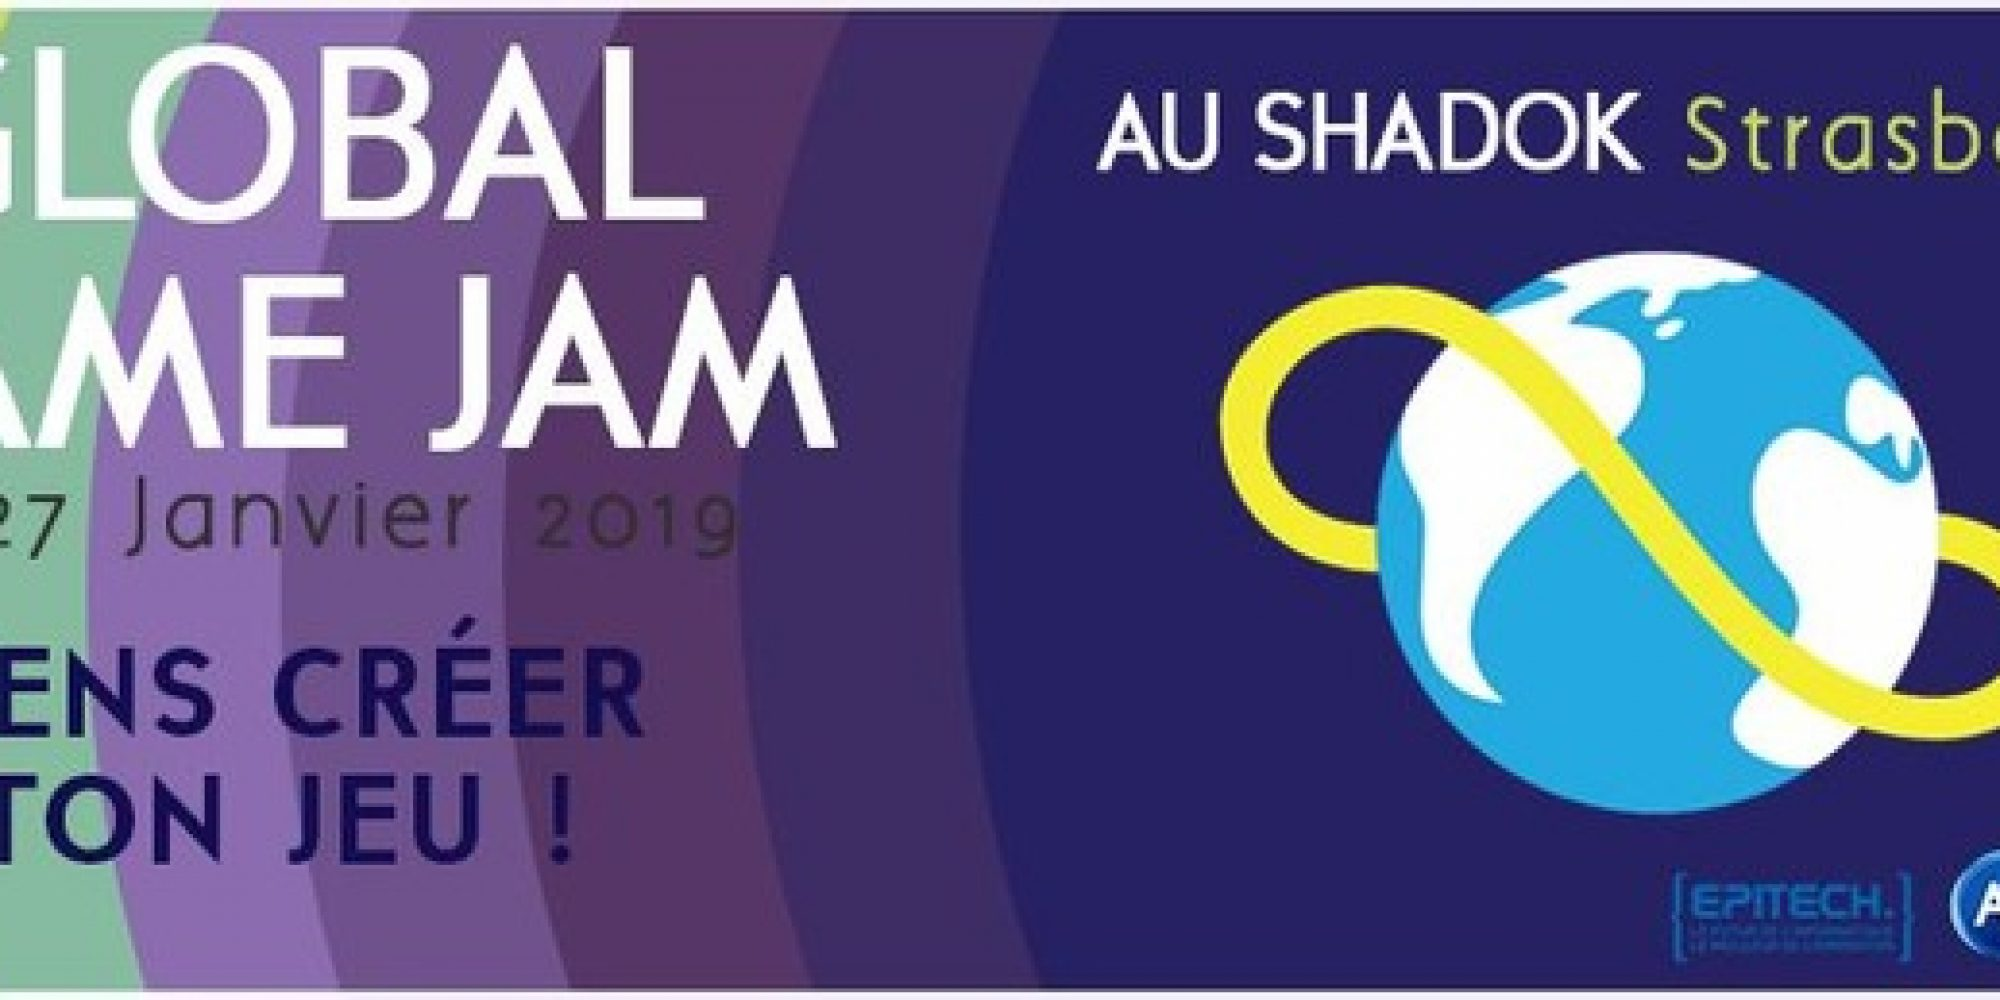 Global Game Jam Strasbourg 2019